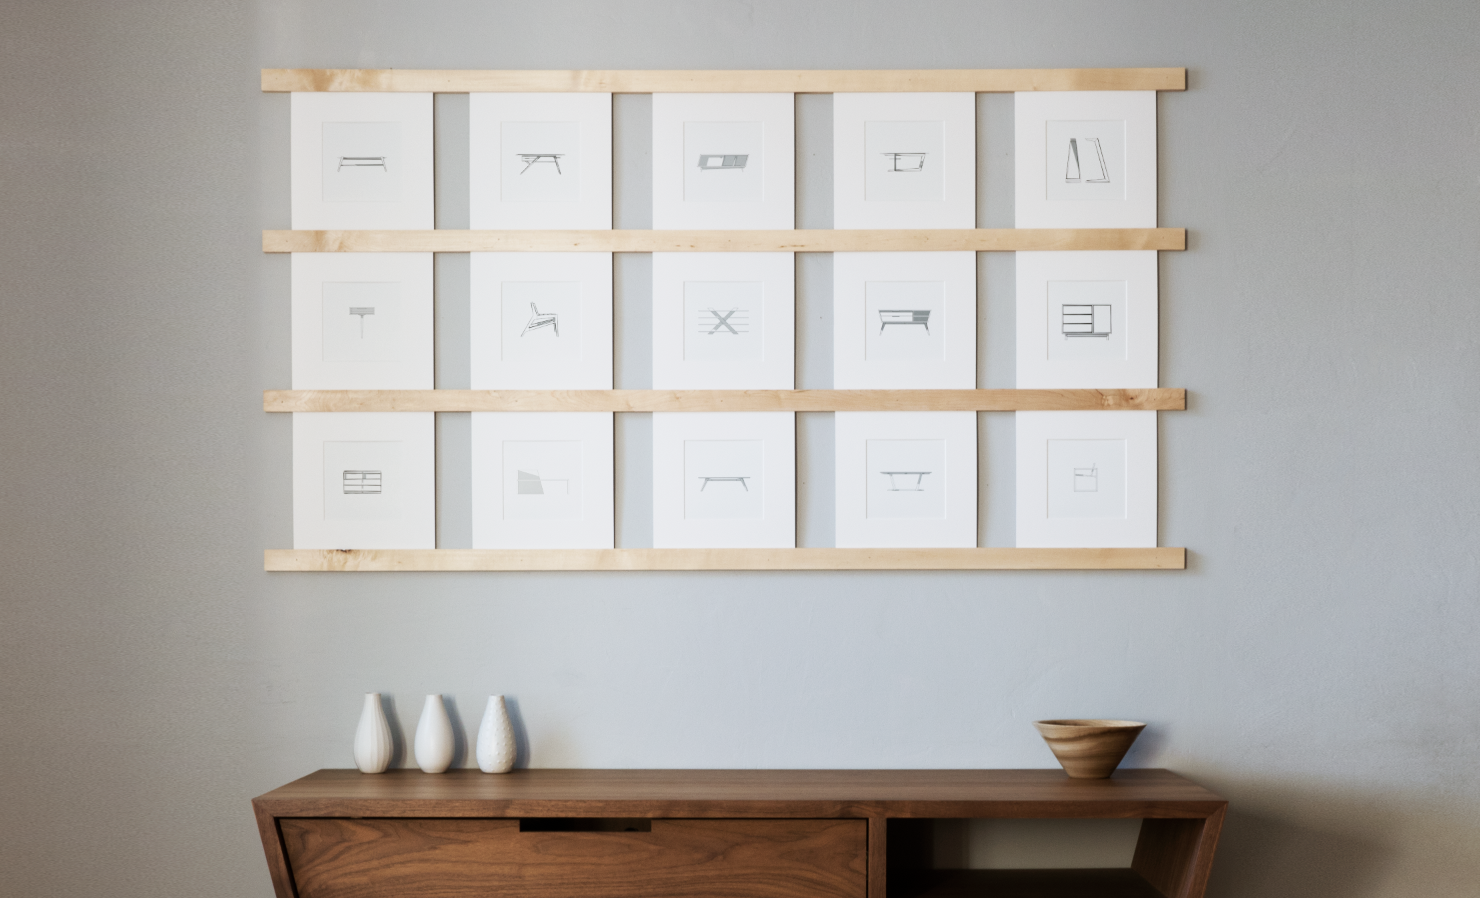 Dwell Made Presents: DIY Picture Wall